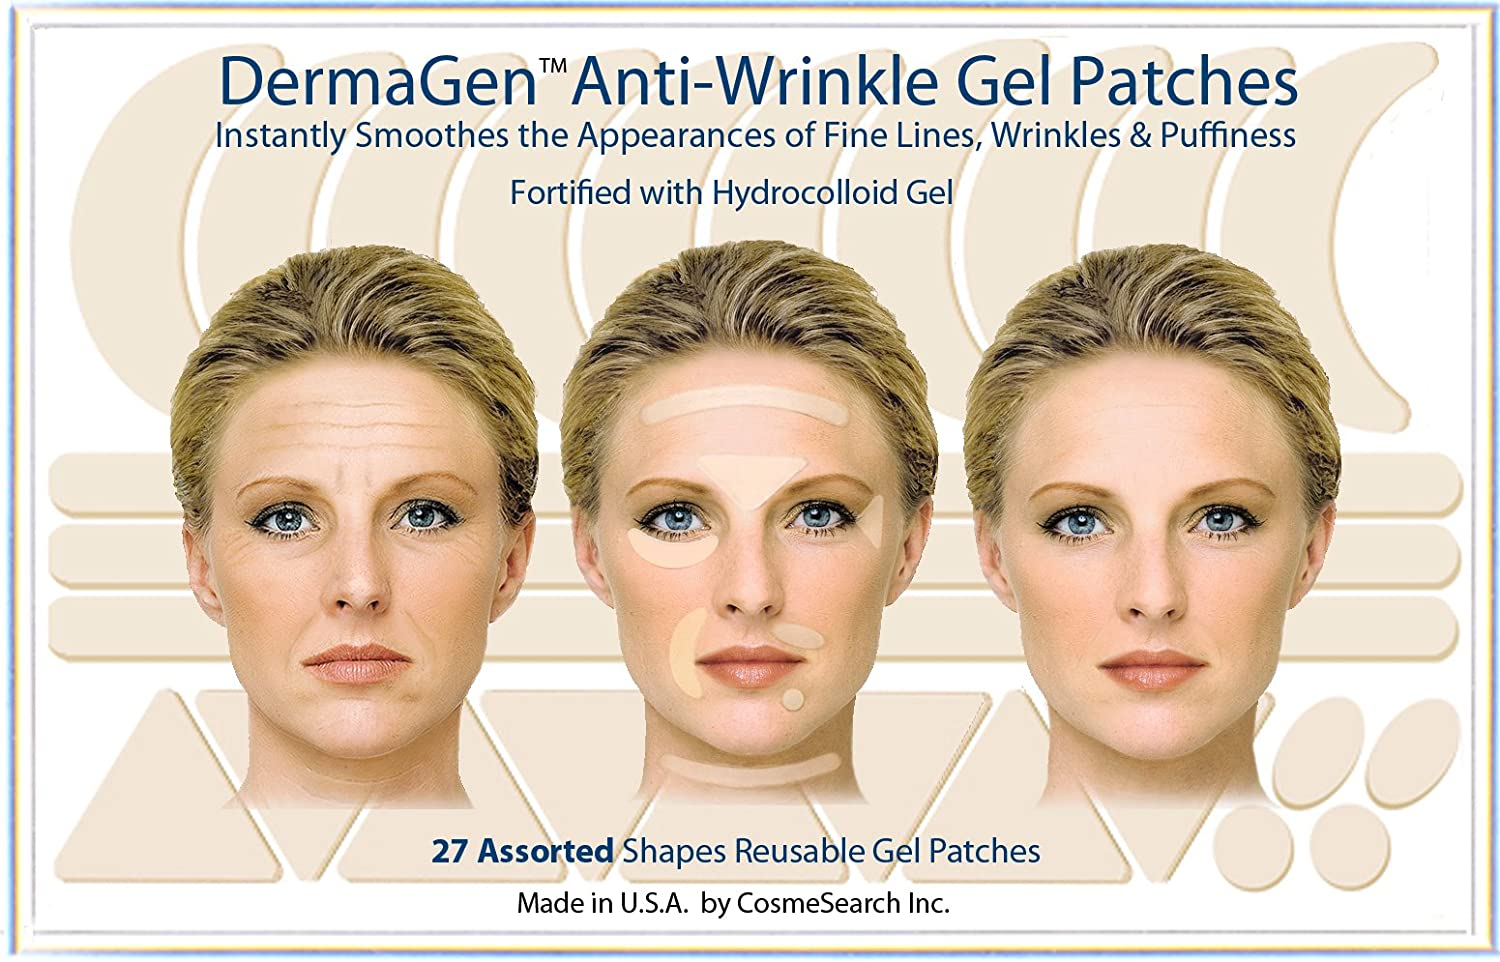 DermaGen Anti-Wrinkle Patches with Hydrocolloid Gel (Assorted) CosmeSearch Inc.